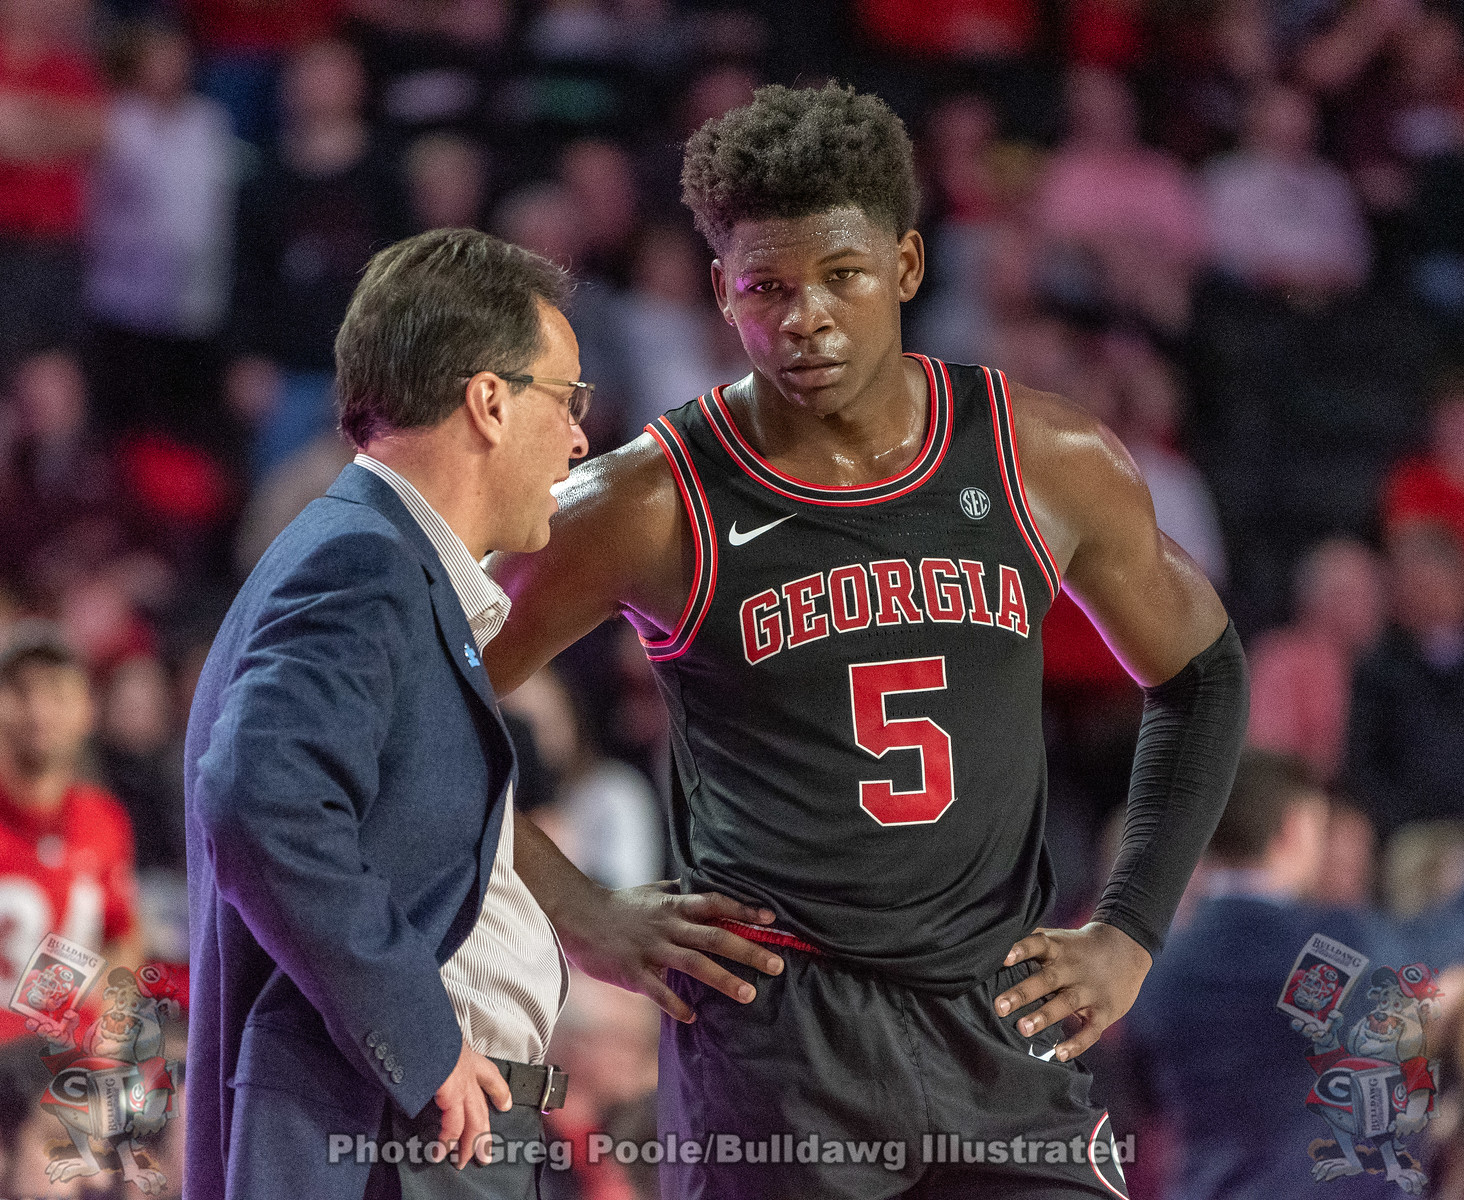 Tom Crean and Anthony Edwards